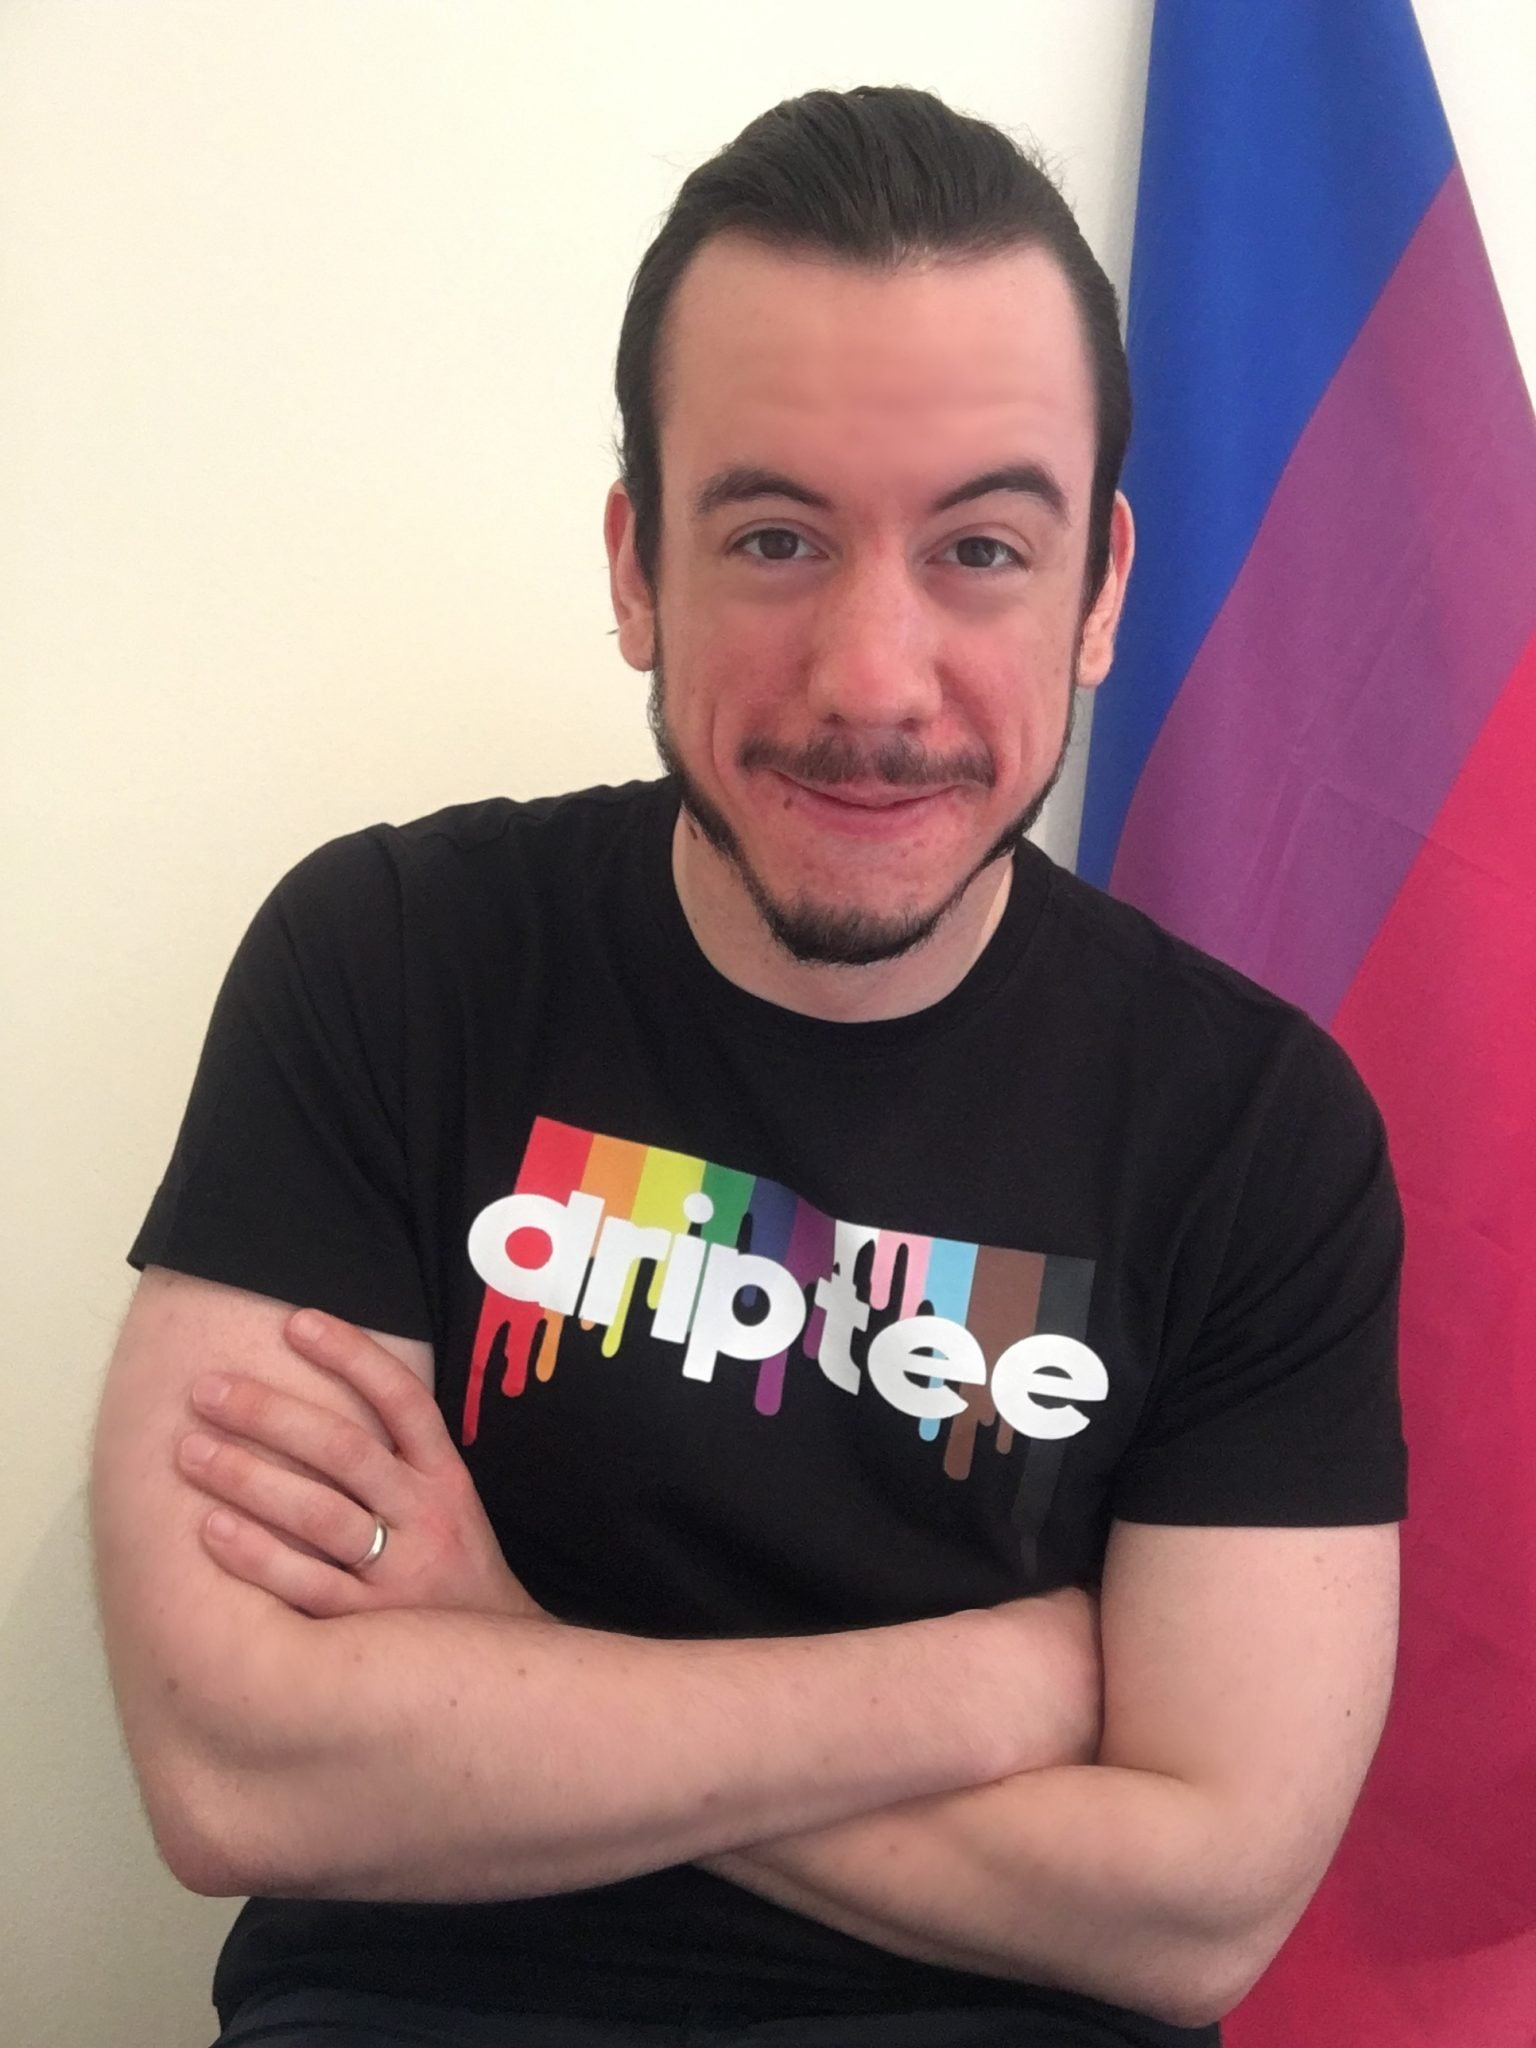 a smiling man (Mark Stokes) crossing his arms while wearing a black tee with DRIPTEE written on it and a Bi flag behind him. photo by Mark Stokes]